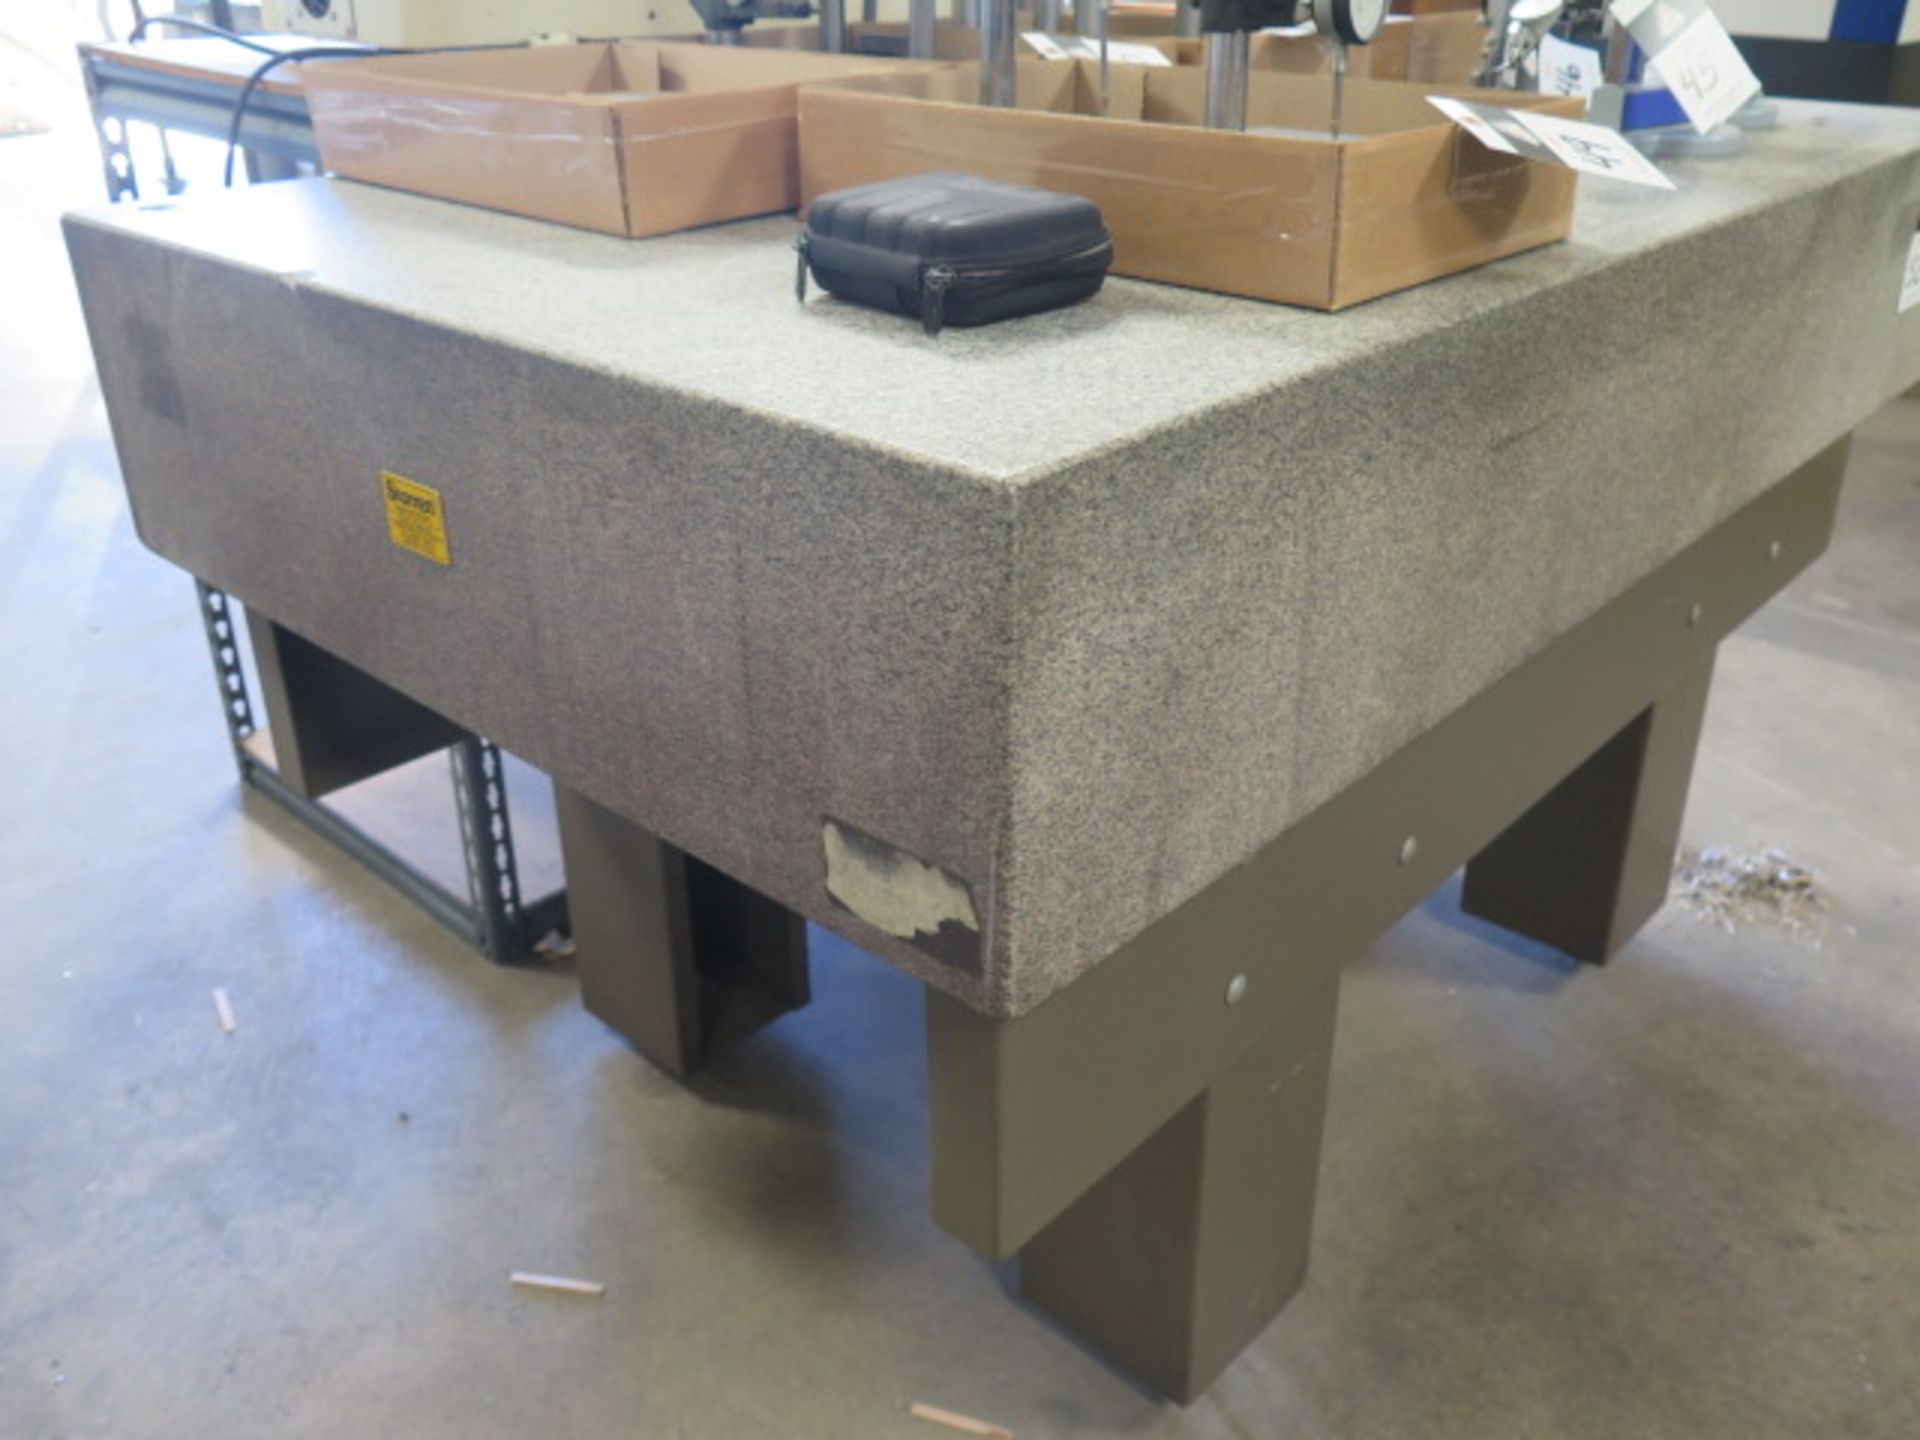 """36"""" x 60"""" x 10"""" Granite Surface Plate w/ Stand (SOLD AS-IS - NO WARRANTY) - Image 3 of 5"""